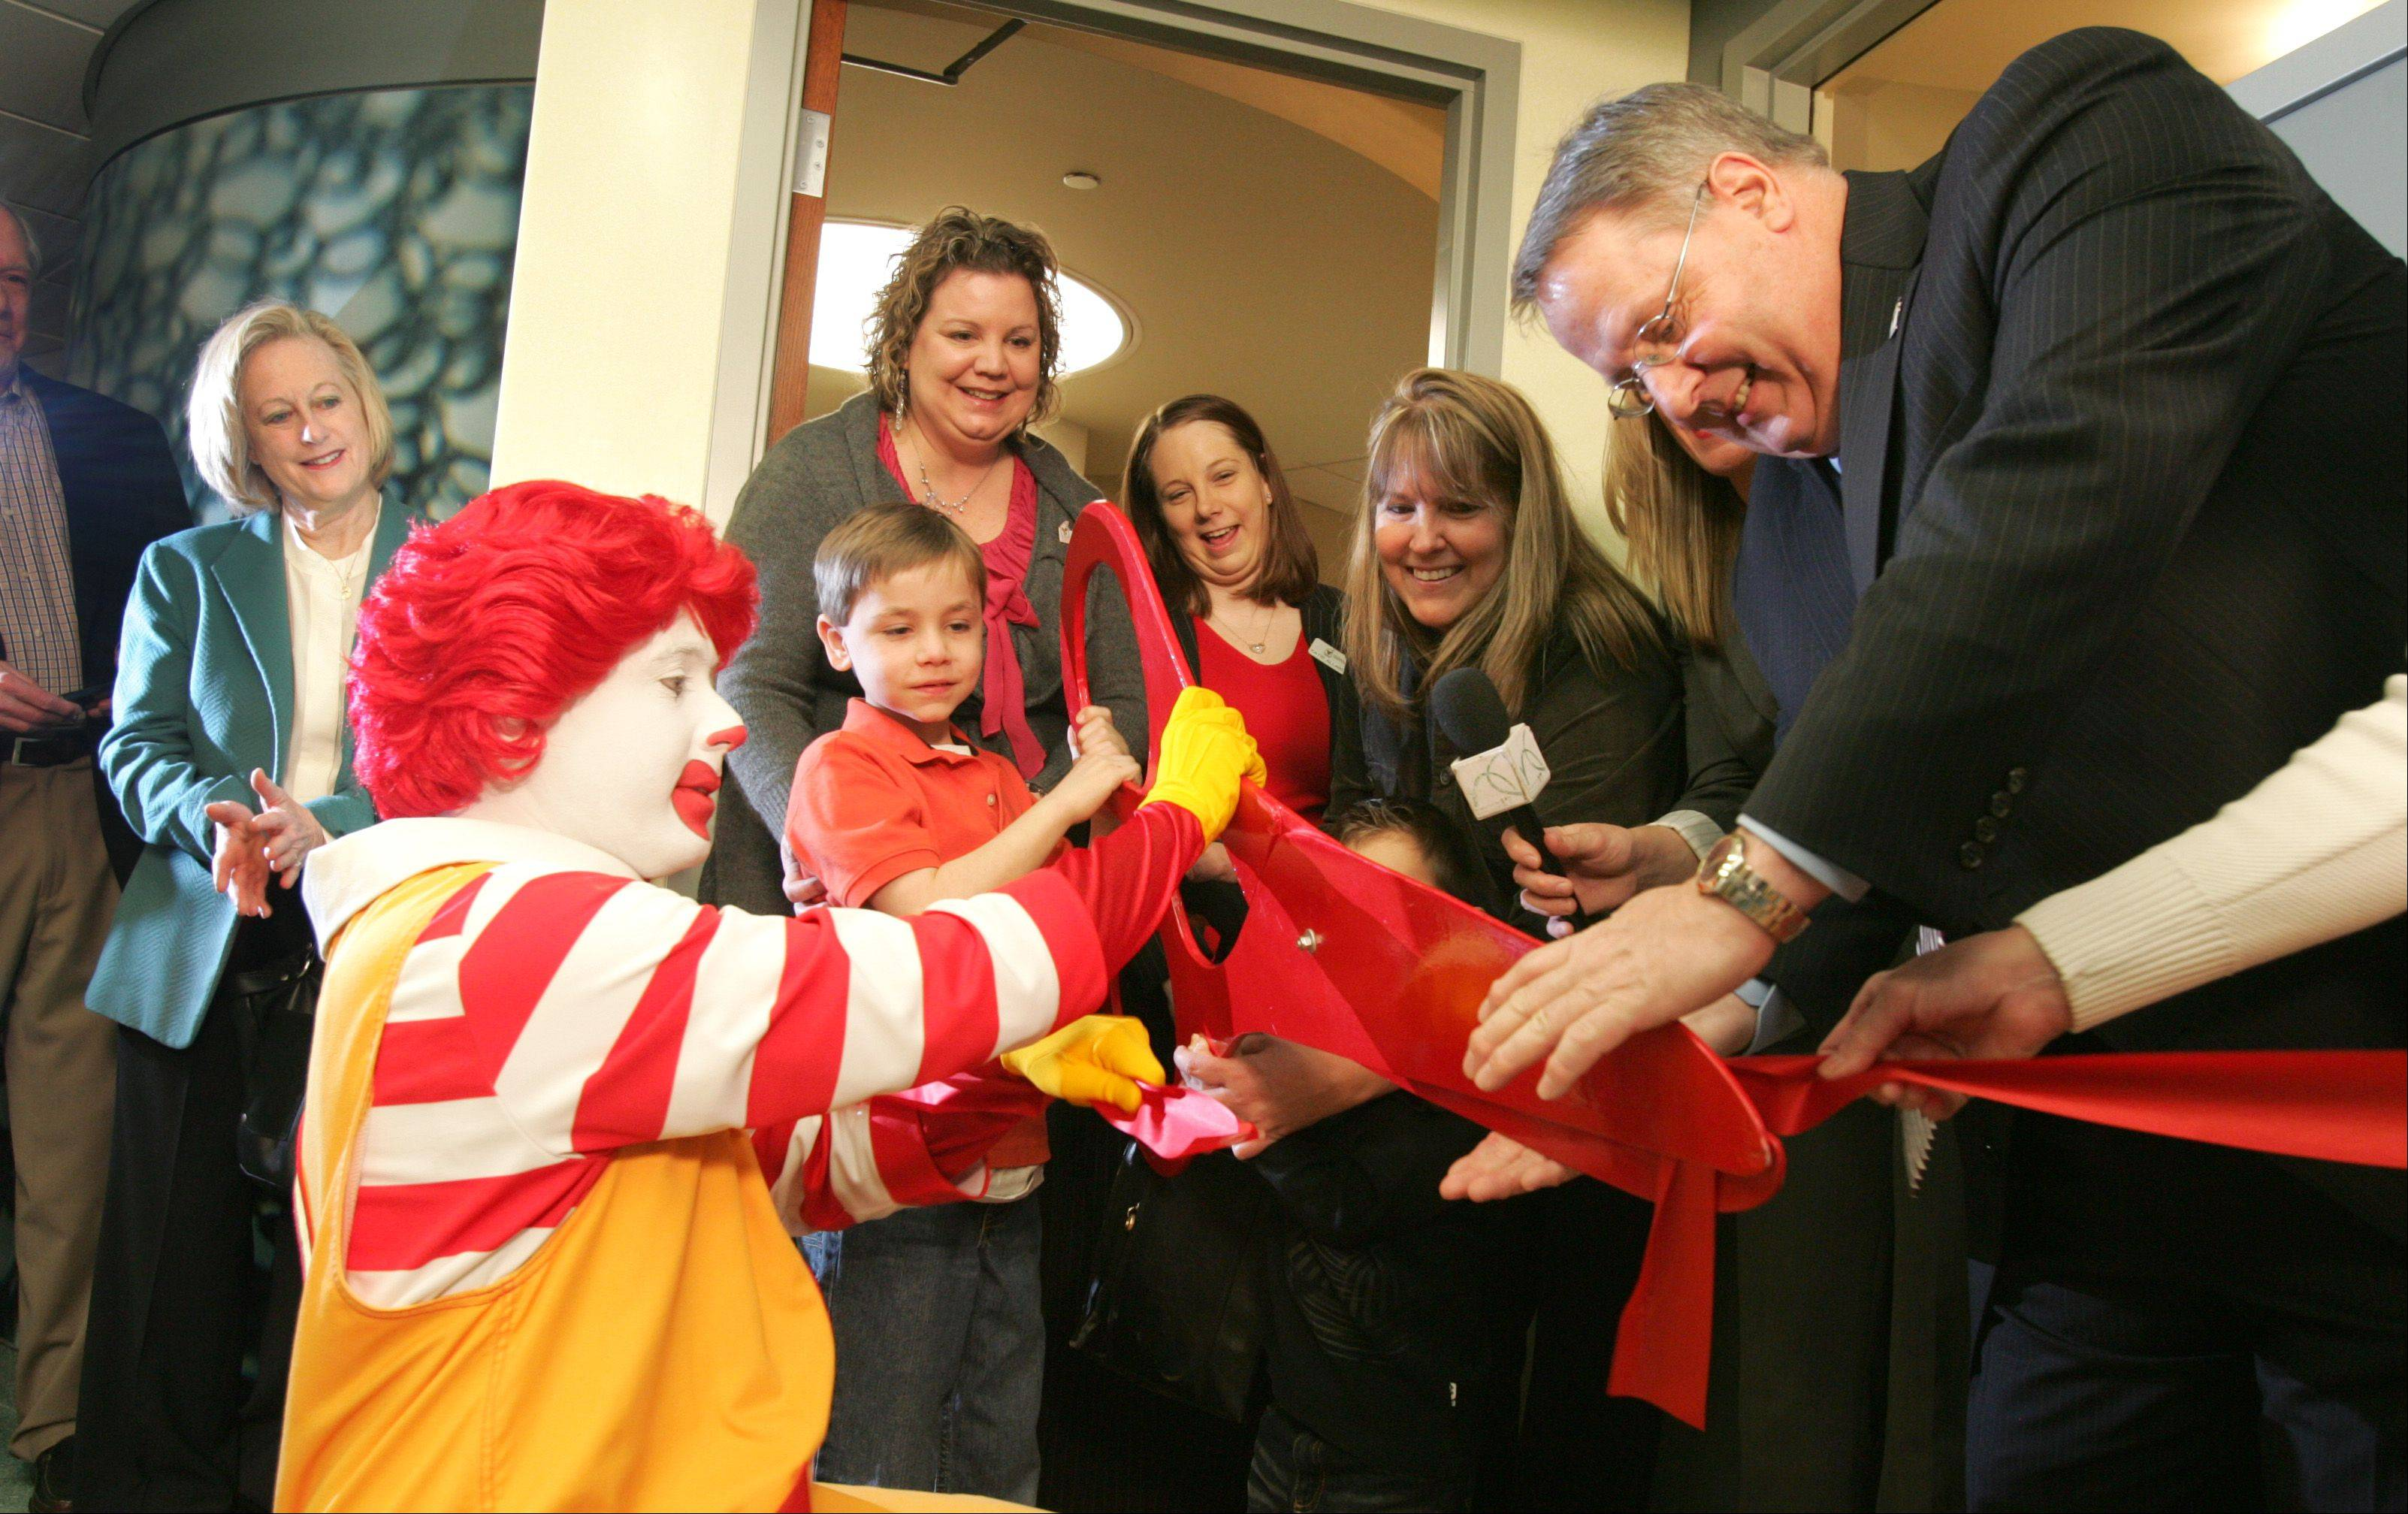 Ronald McDonald cuts a red ribbon at the unveiling of the Ronald McDonald Family Room in Edward Hospital. At right, Doug Porter, CEO of Ronald McDonald House Charities of Chicagoland and Northwest Indiana, assists.